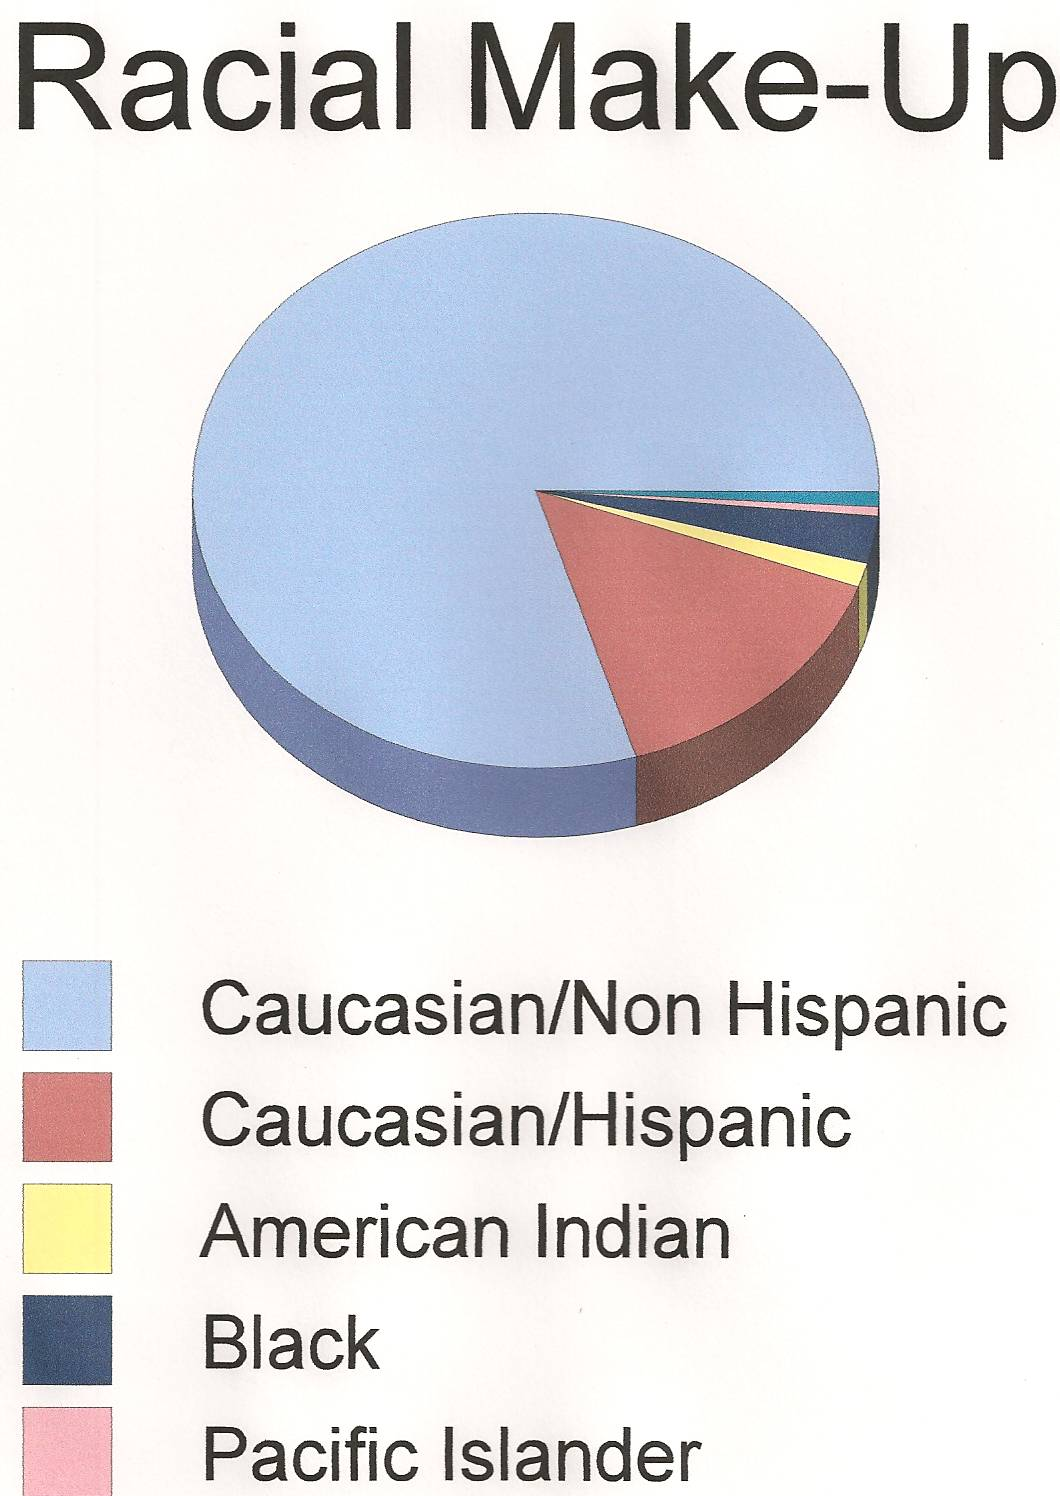 Racial Make-Up Pie Chart